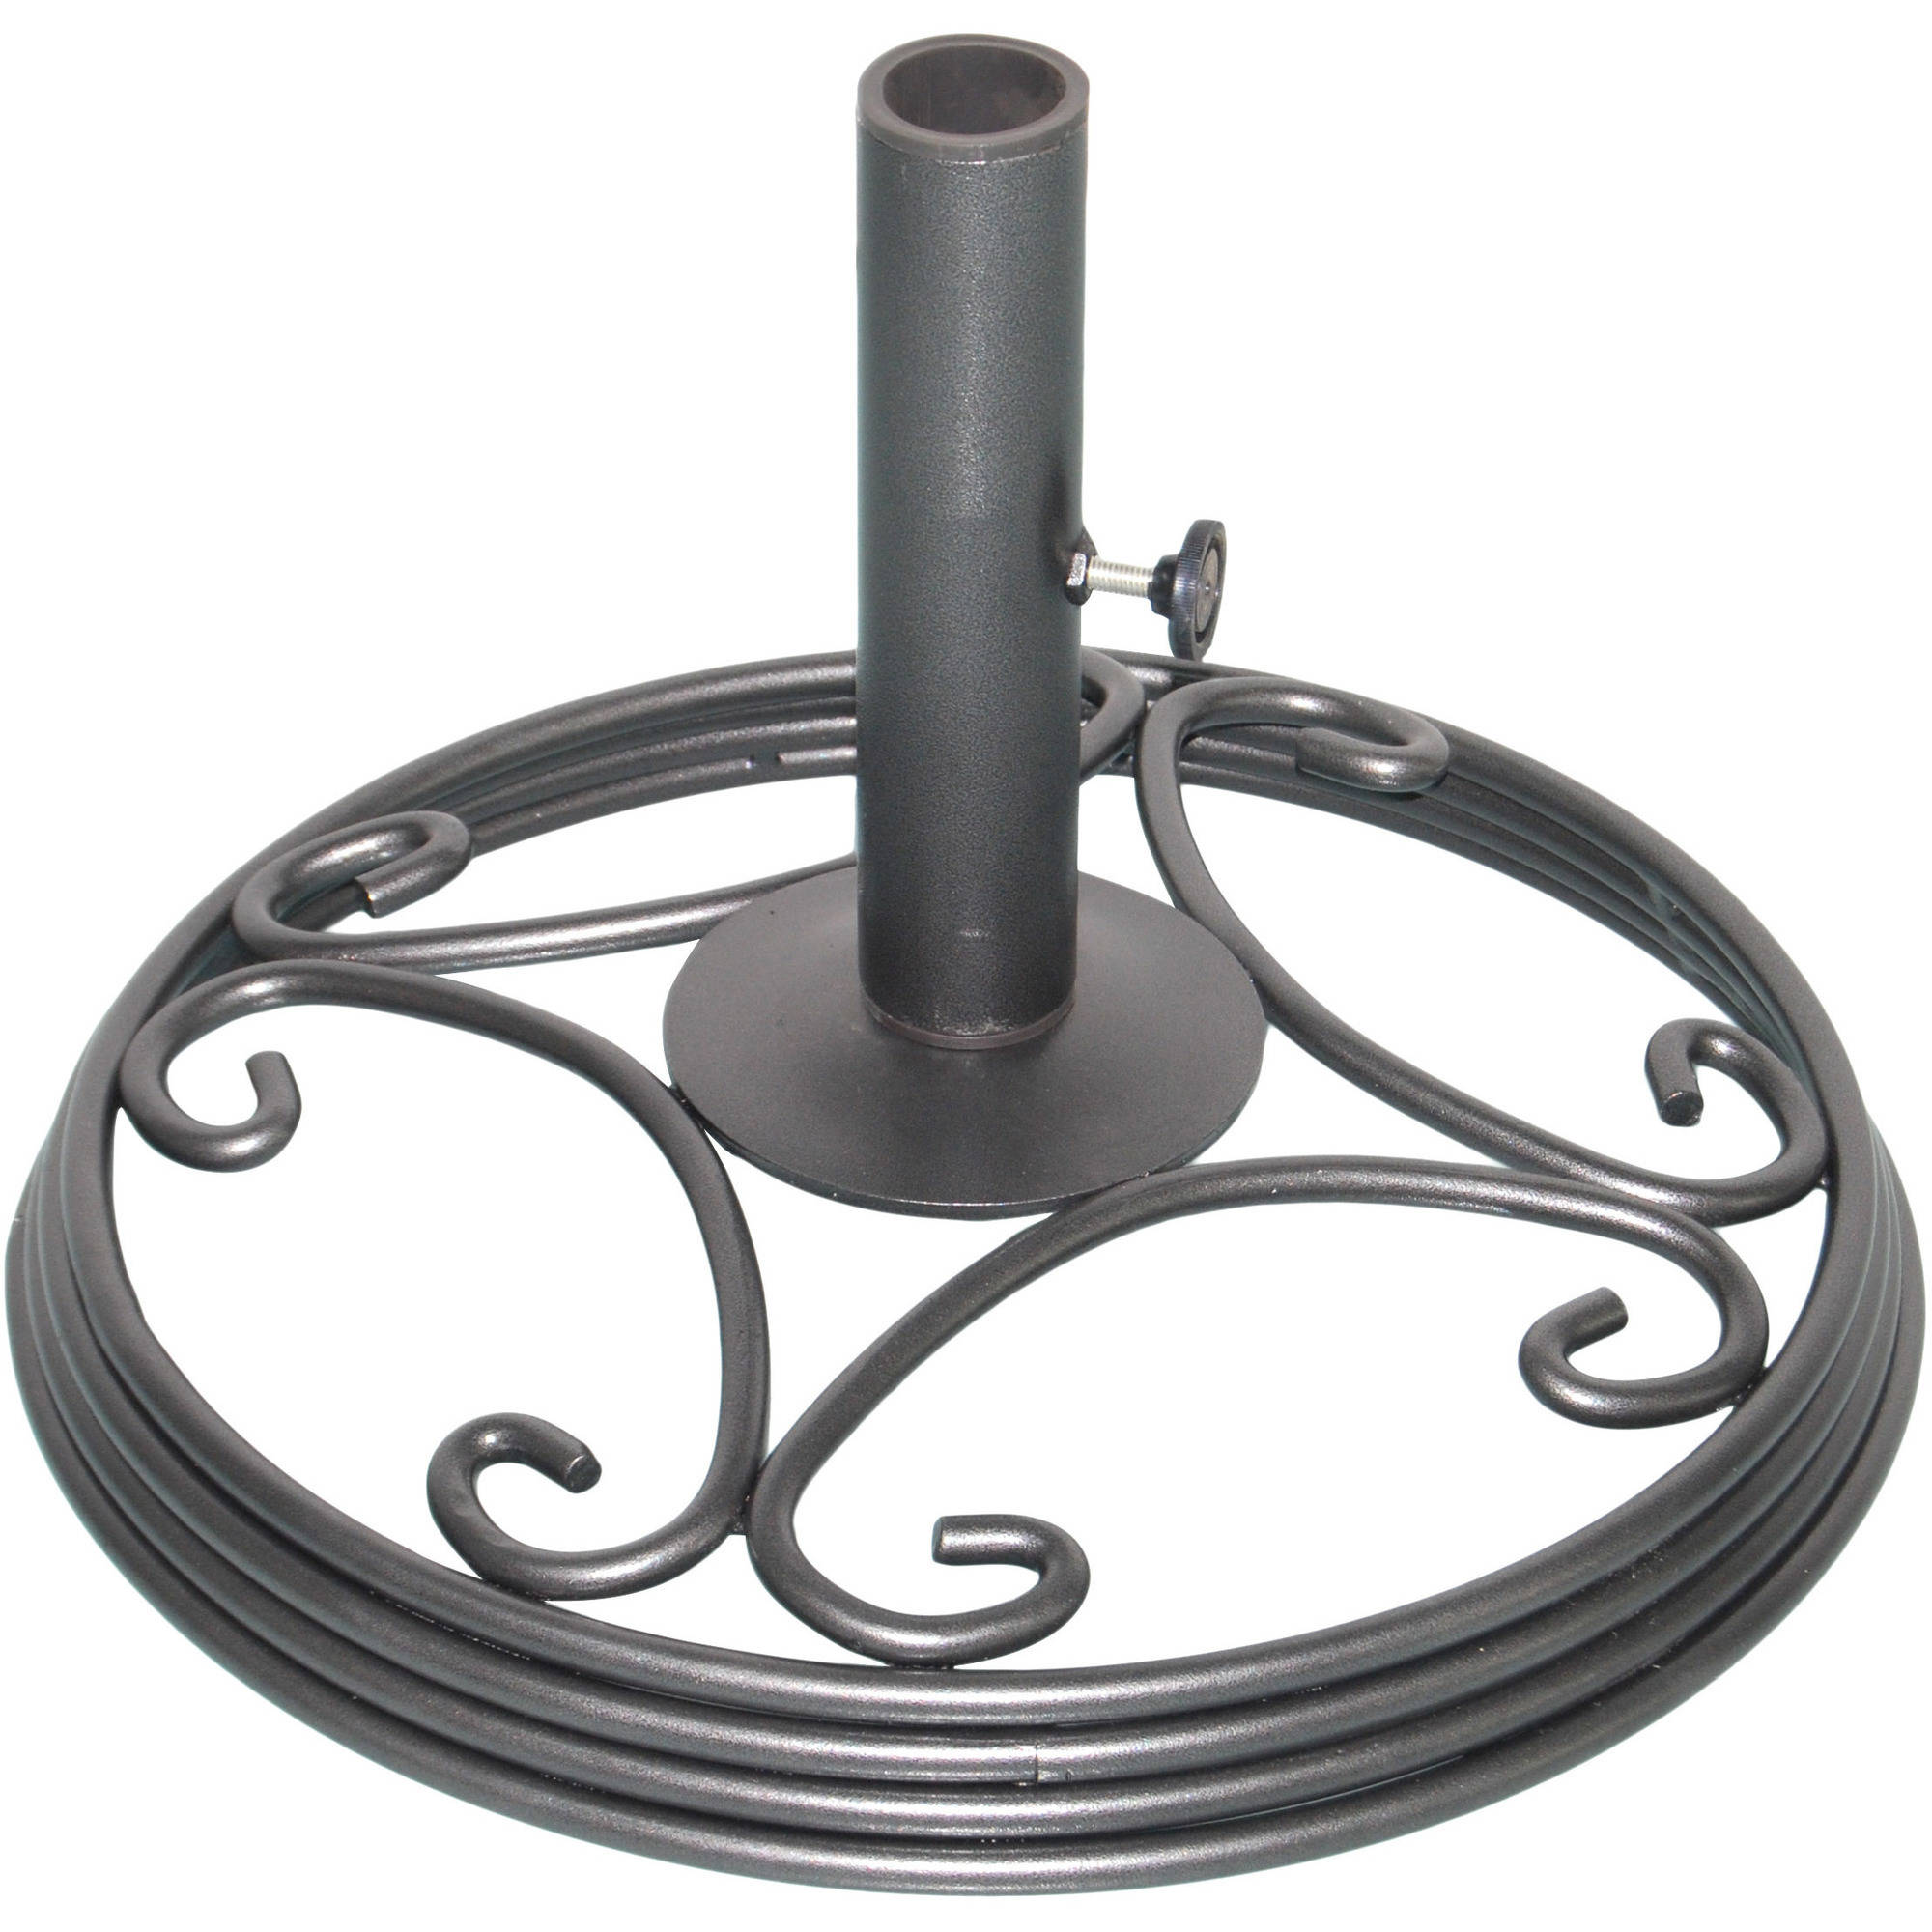 Mainstays Willow Springs Umbrella Base, Pewter Finish